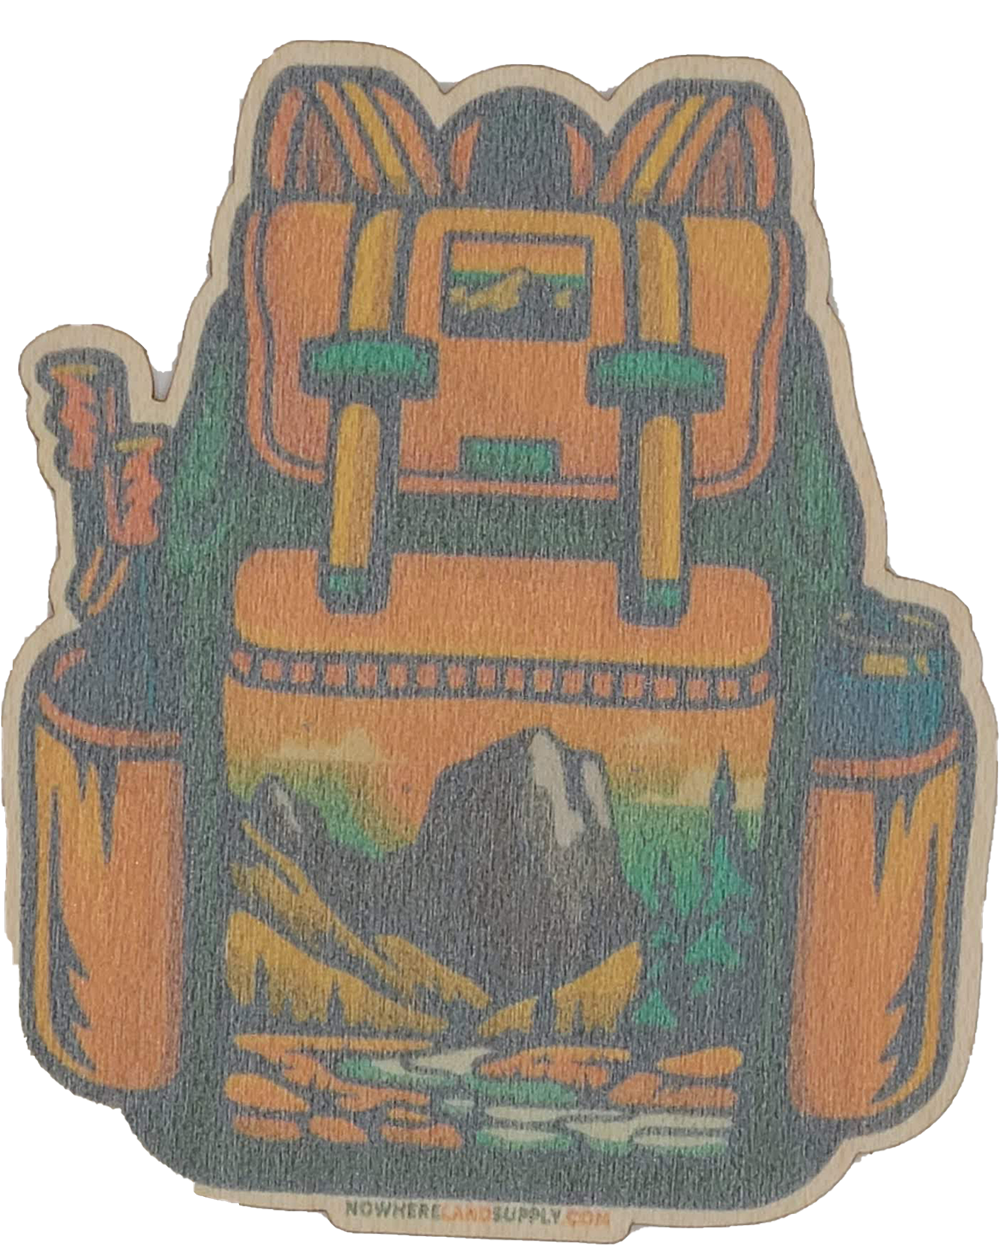 Backpack Wood Sticker - Nowhere Land